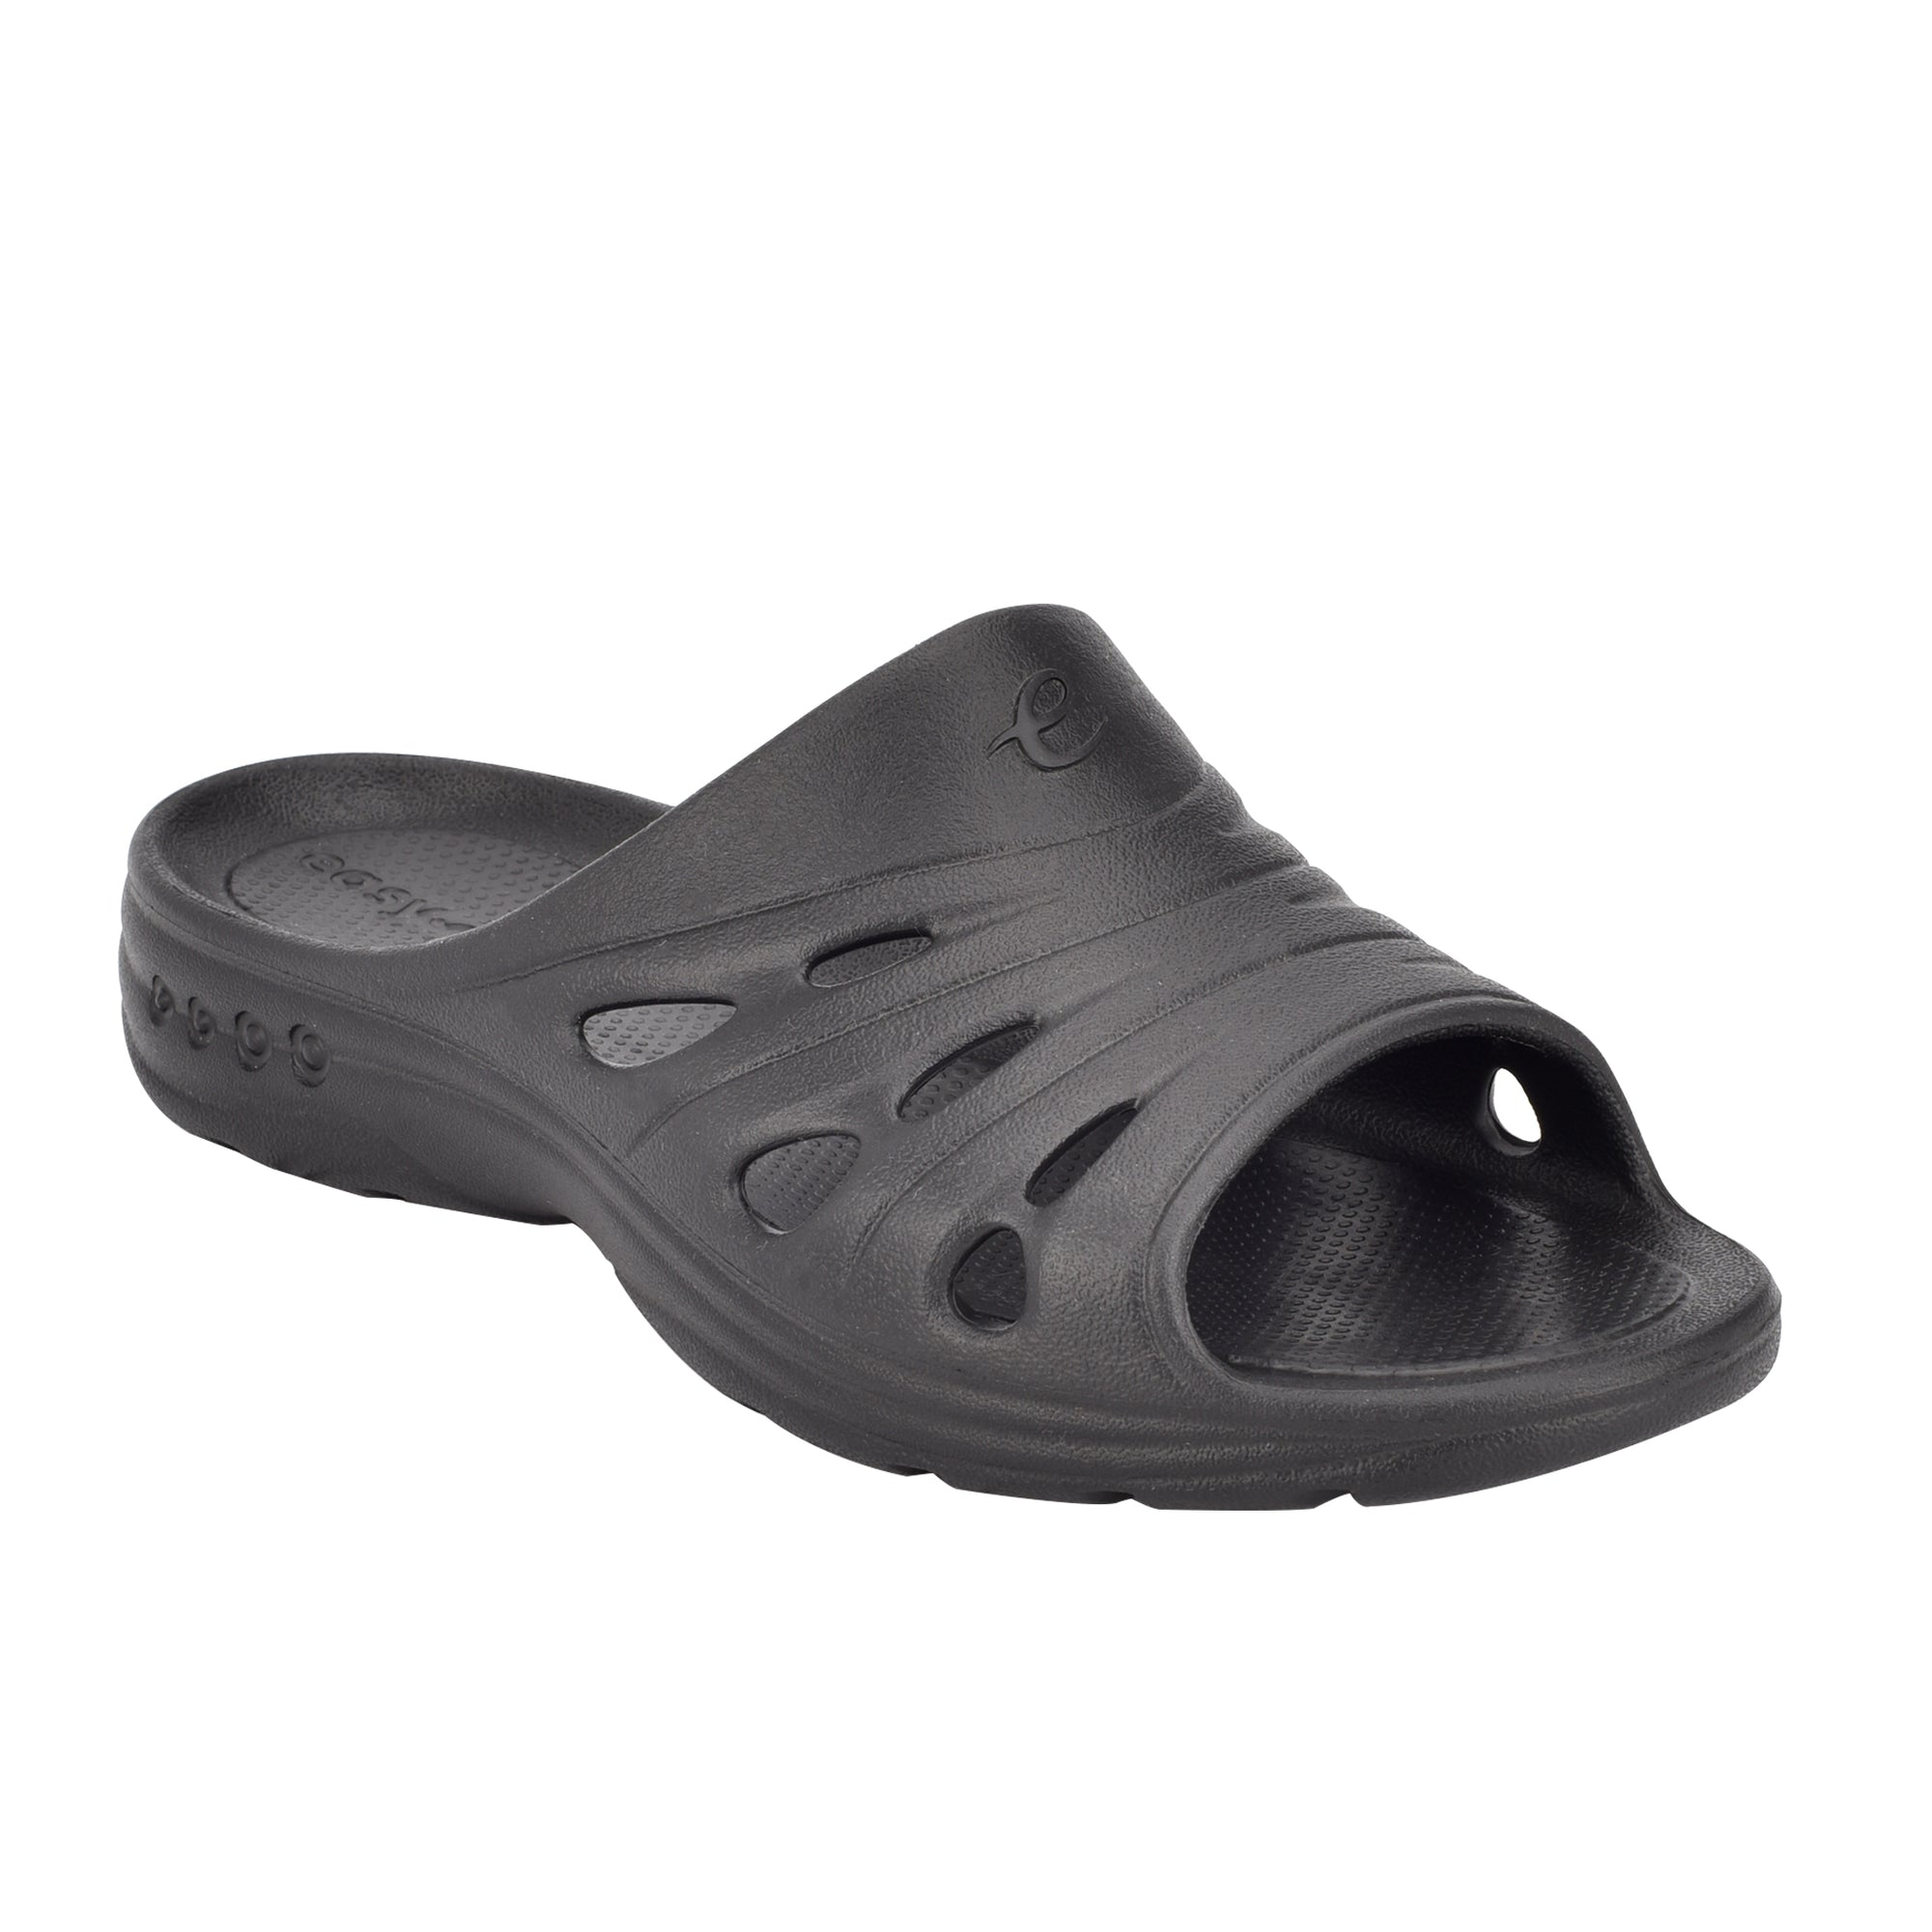 Travelslide Slip On Sandals